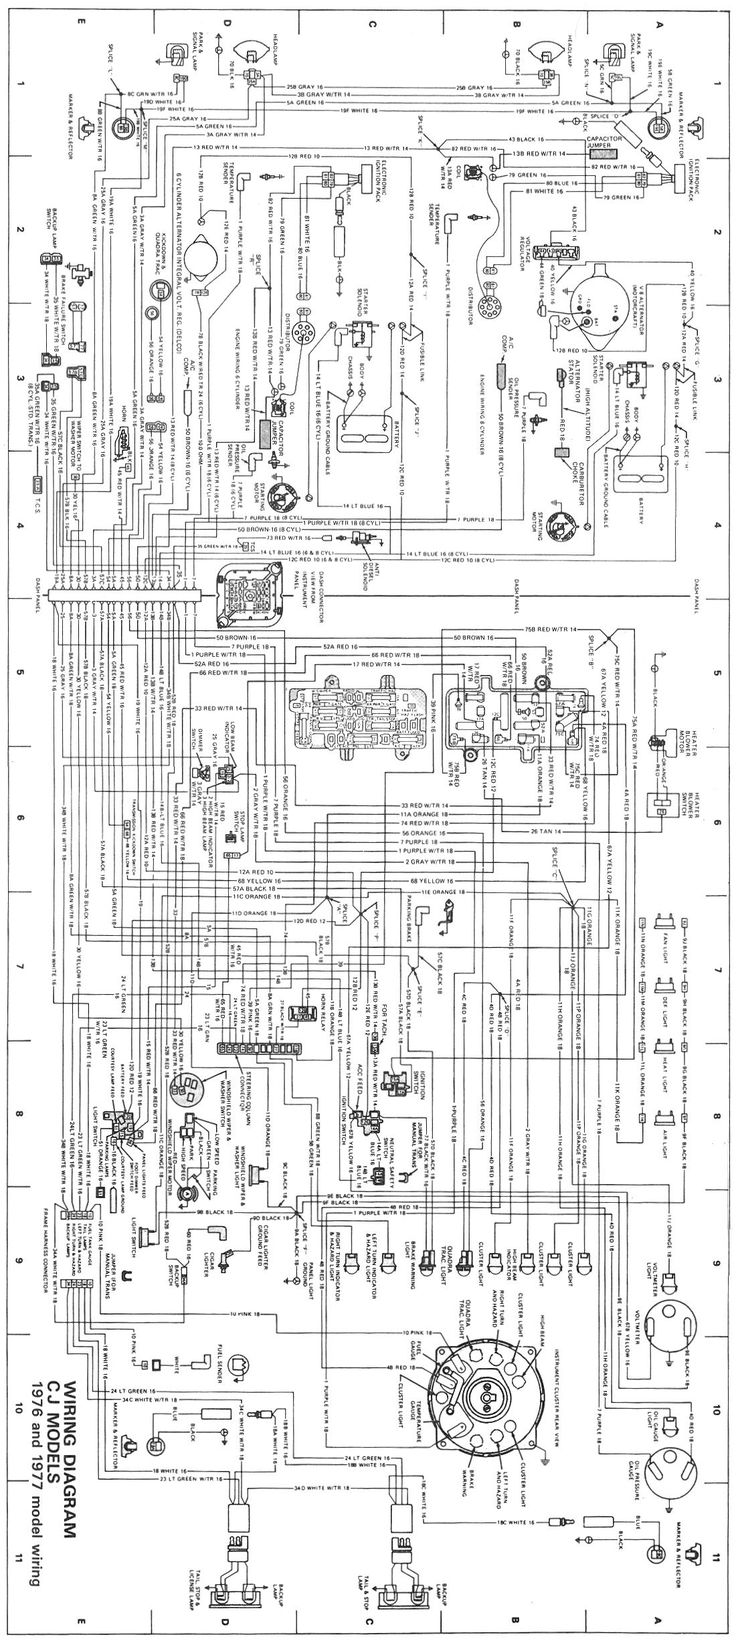 1980 jeep cj5 dash wiring diagram 72 best images about 1976 jeep cj5 ideas, parts etc on ... 1980 jeep j 20 wiring diagram